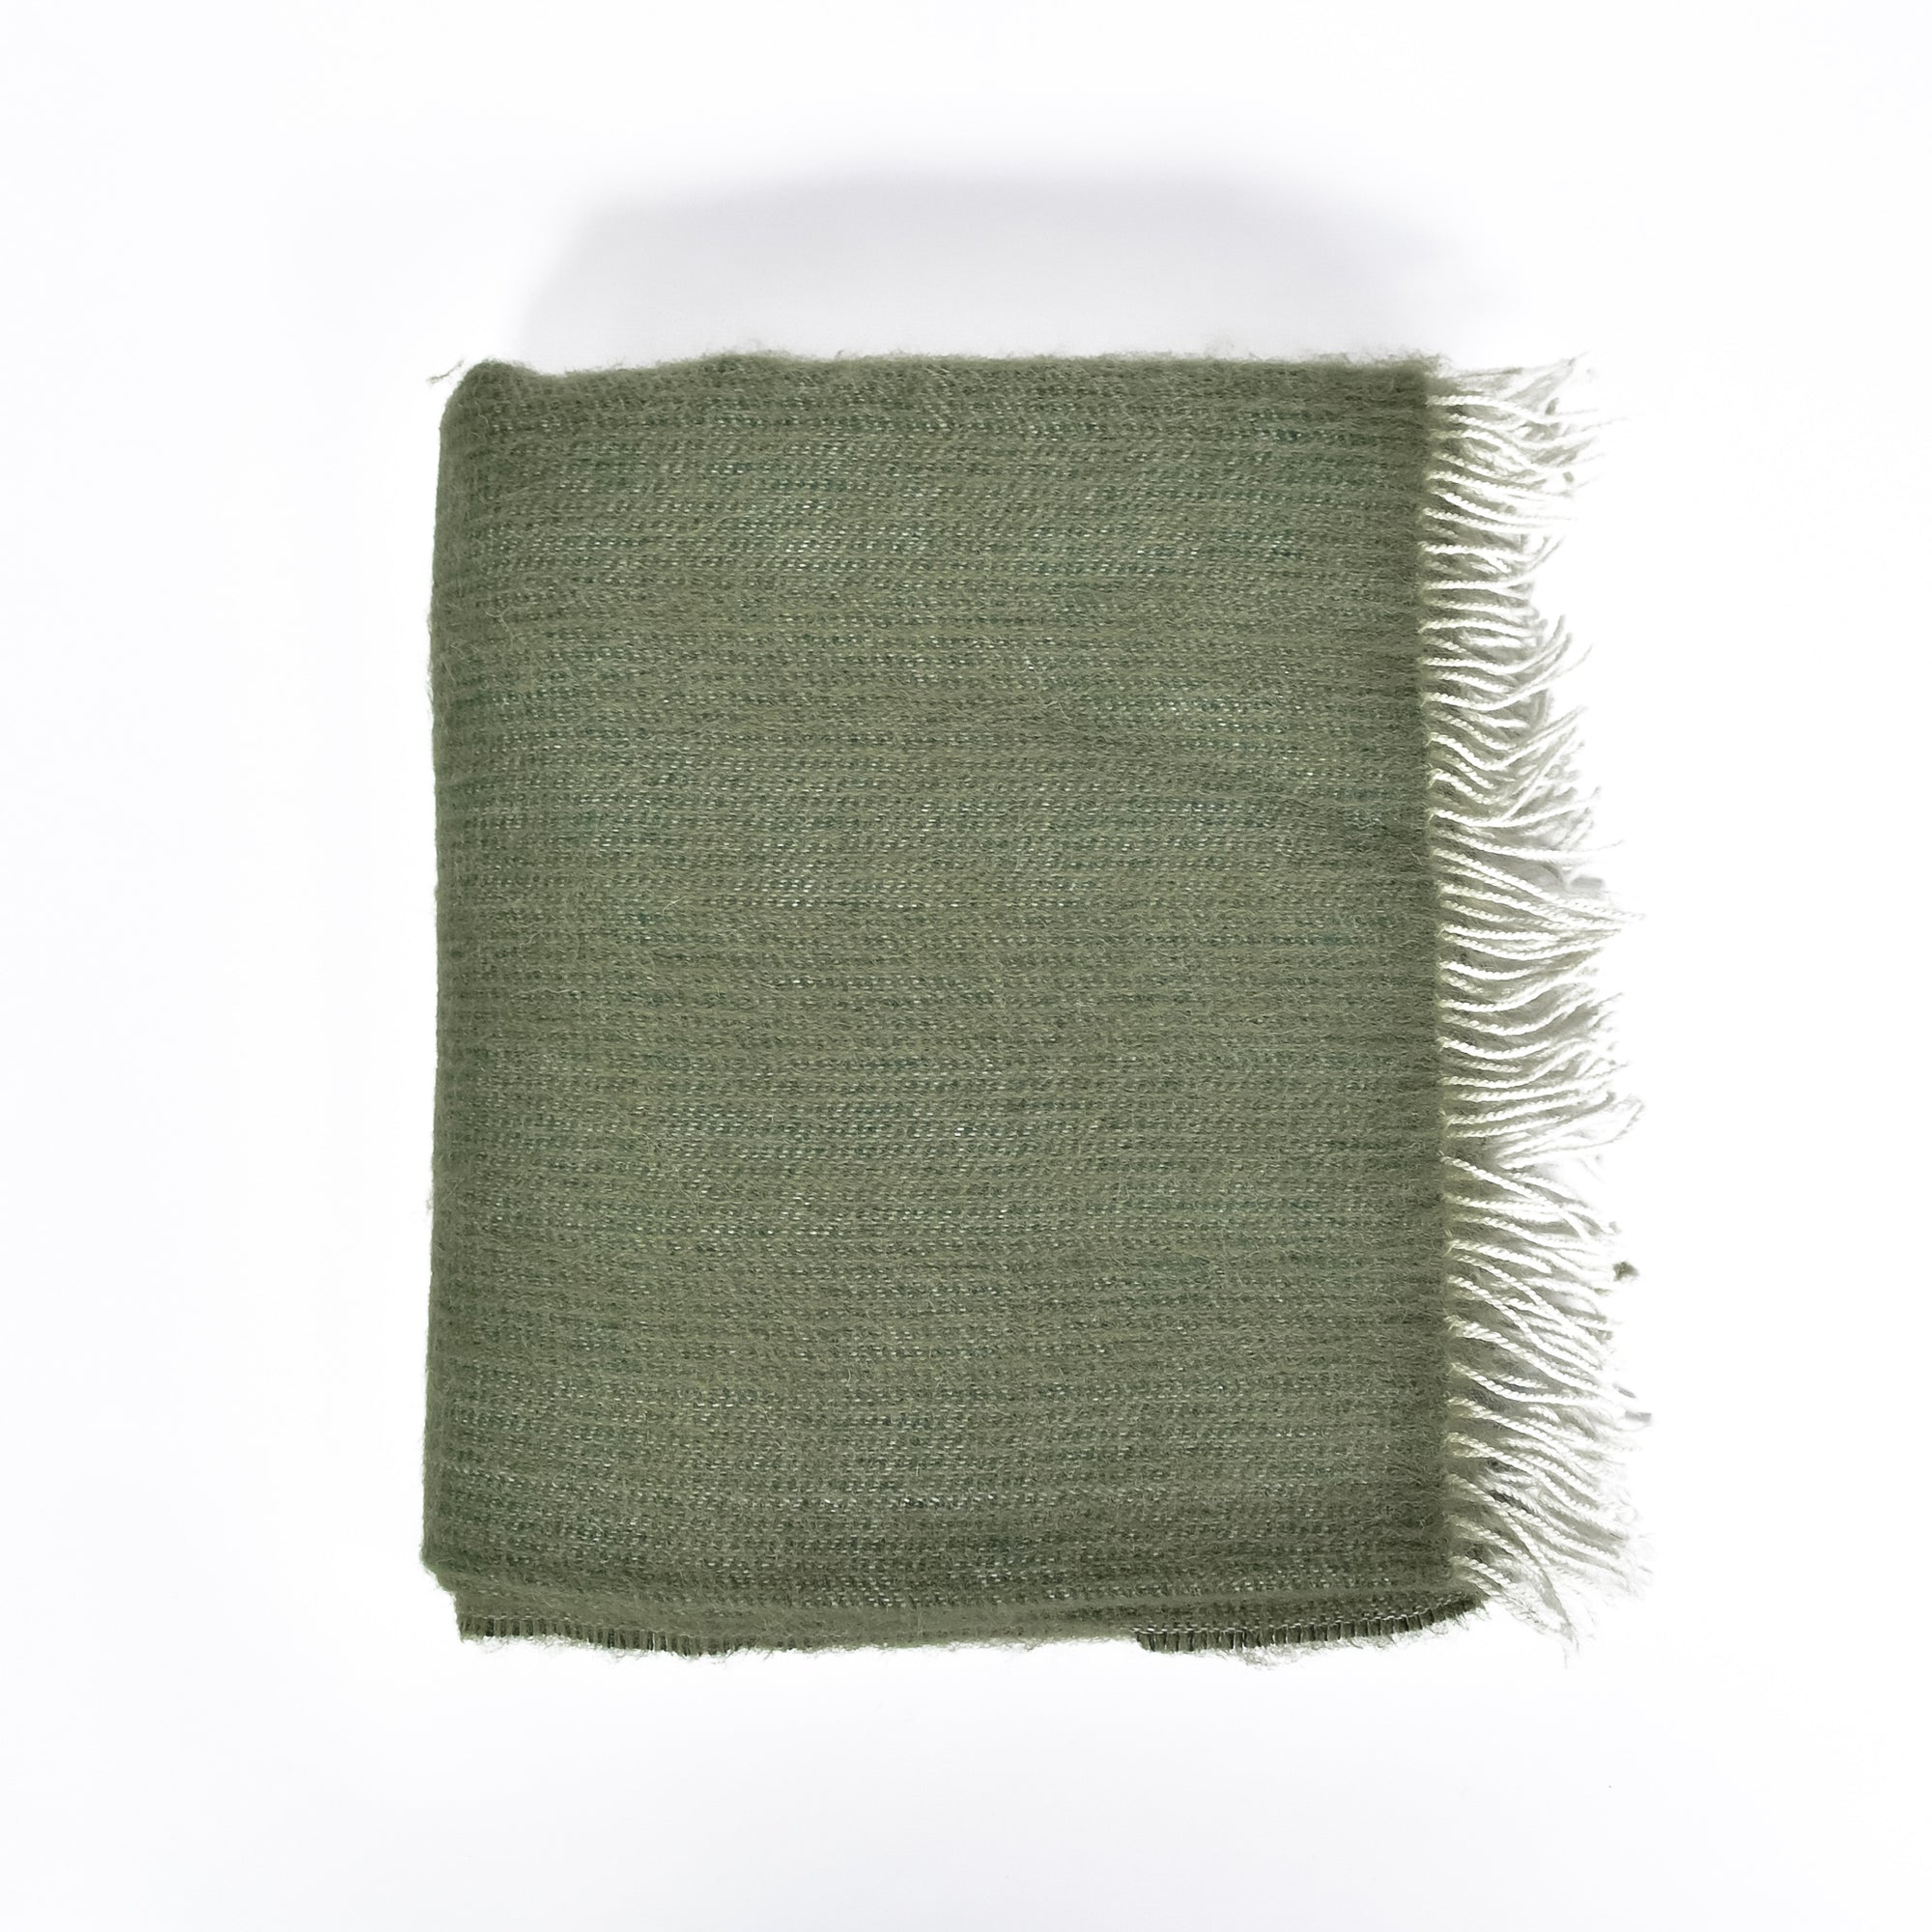 The Moss Blanket - Rug & Weave